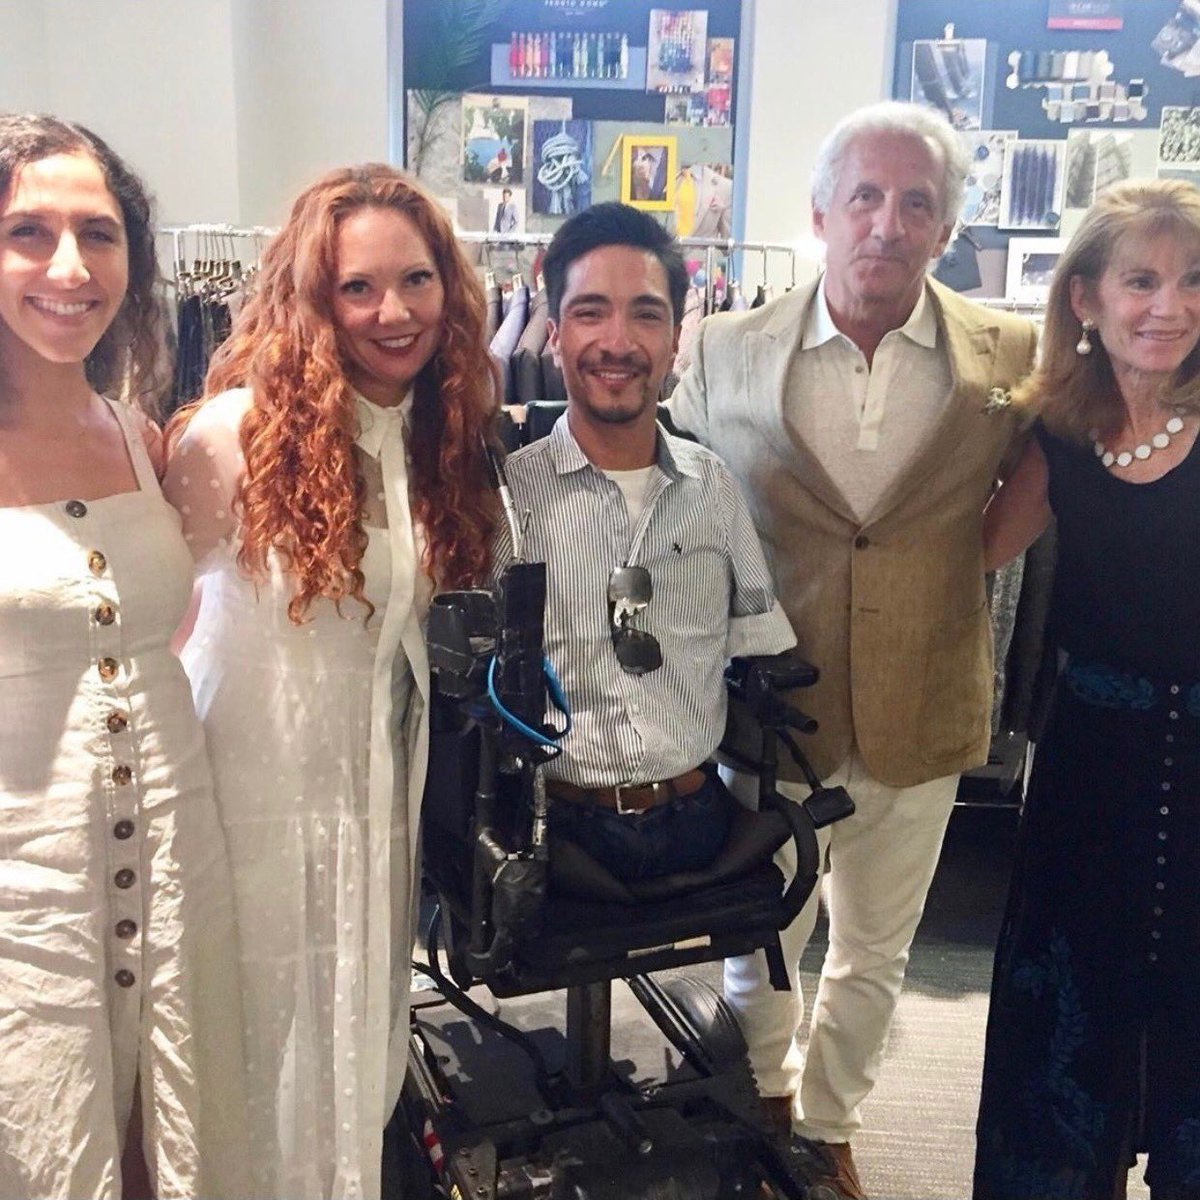 What an amazing opportunity we had last week to meet @coachrobmendez at the @JosephAbboud HQ! Didn't Coach look great at the #ESPYS this year? That's all thanks to the Joseph Abboud team. Shout out to Jr. Board Member Lila Abboud featured in the pictures! #RethinkTheRunway